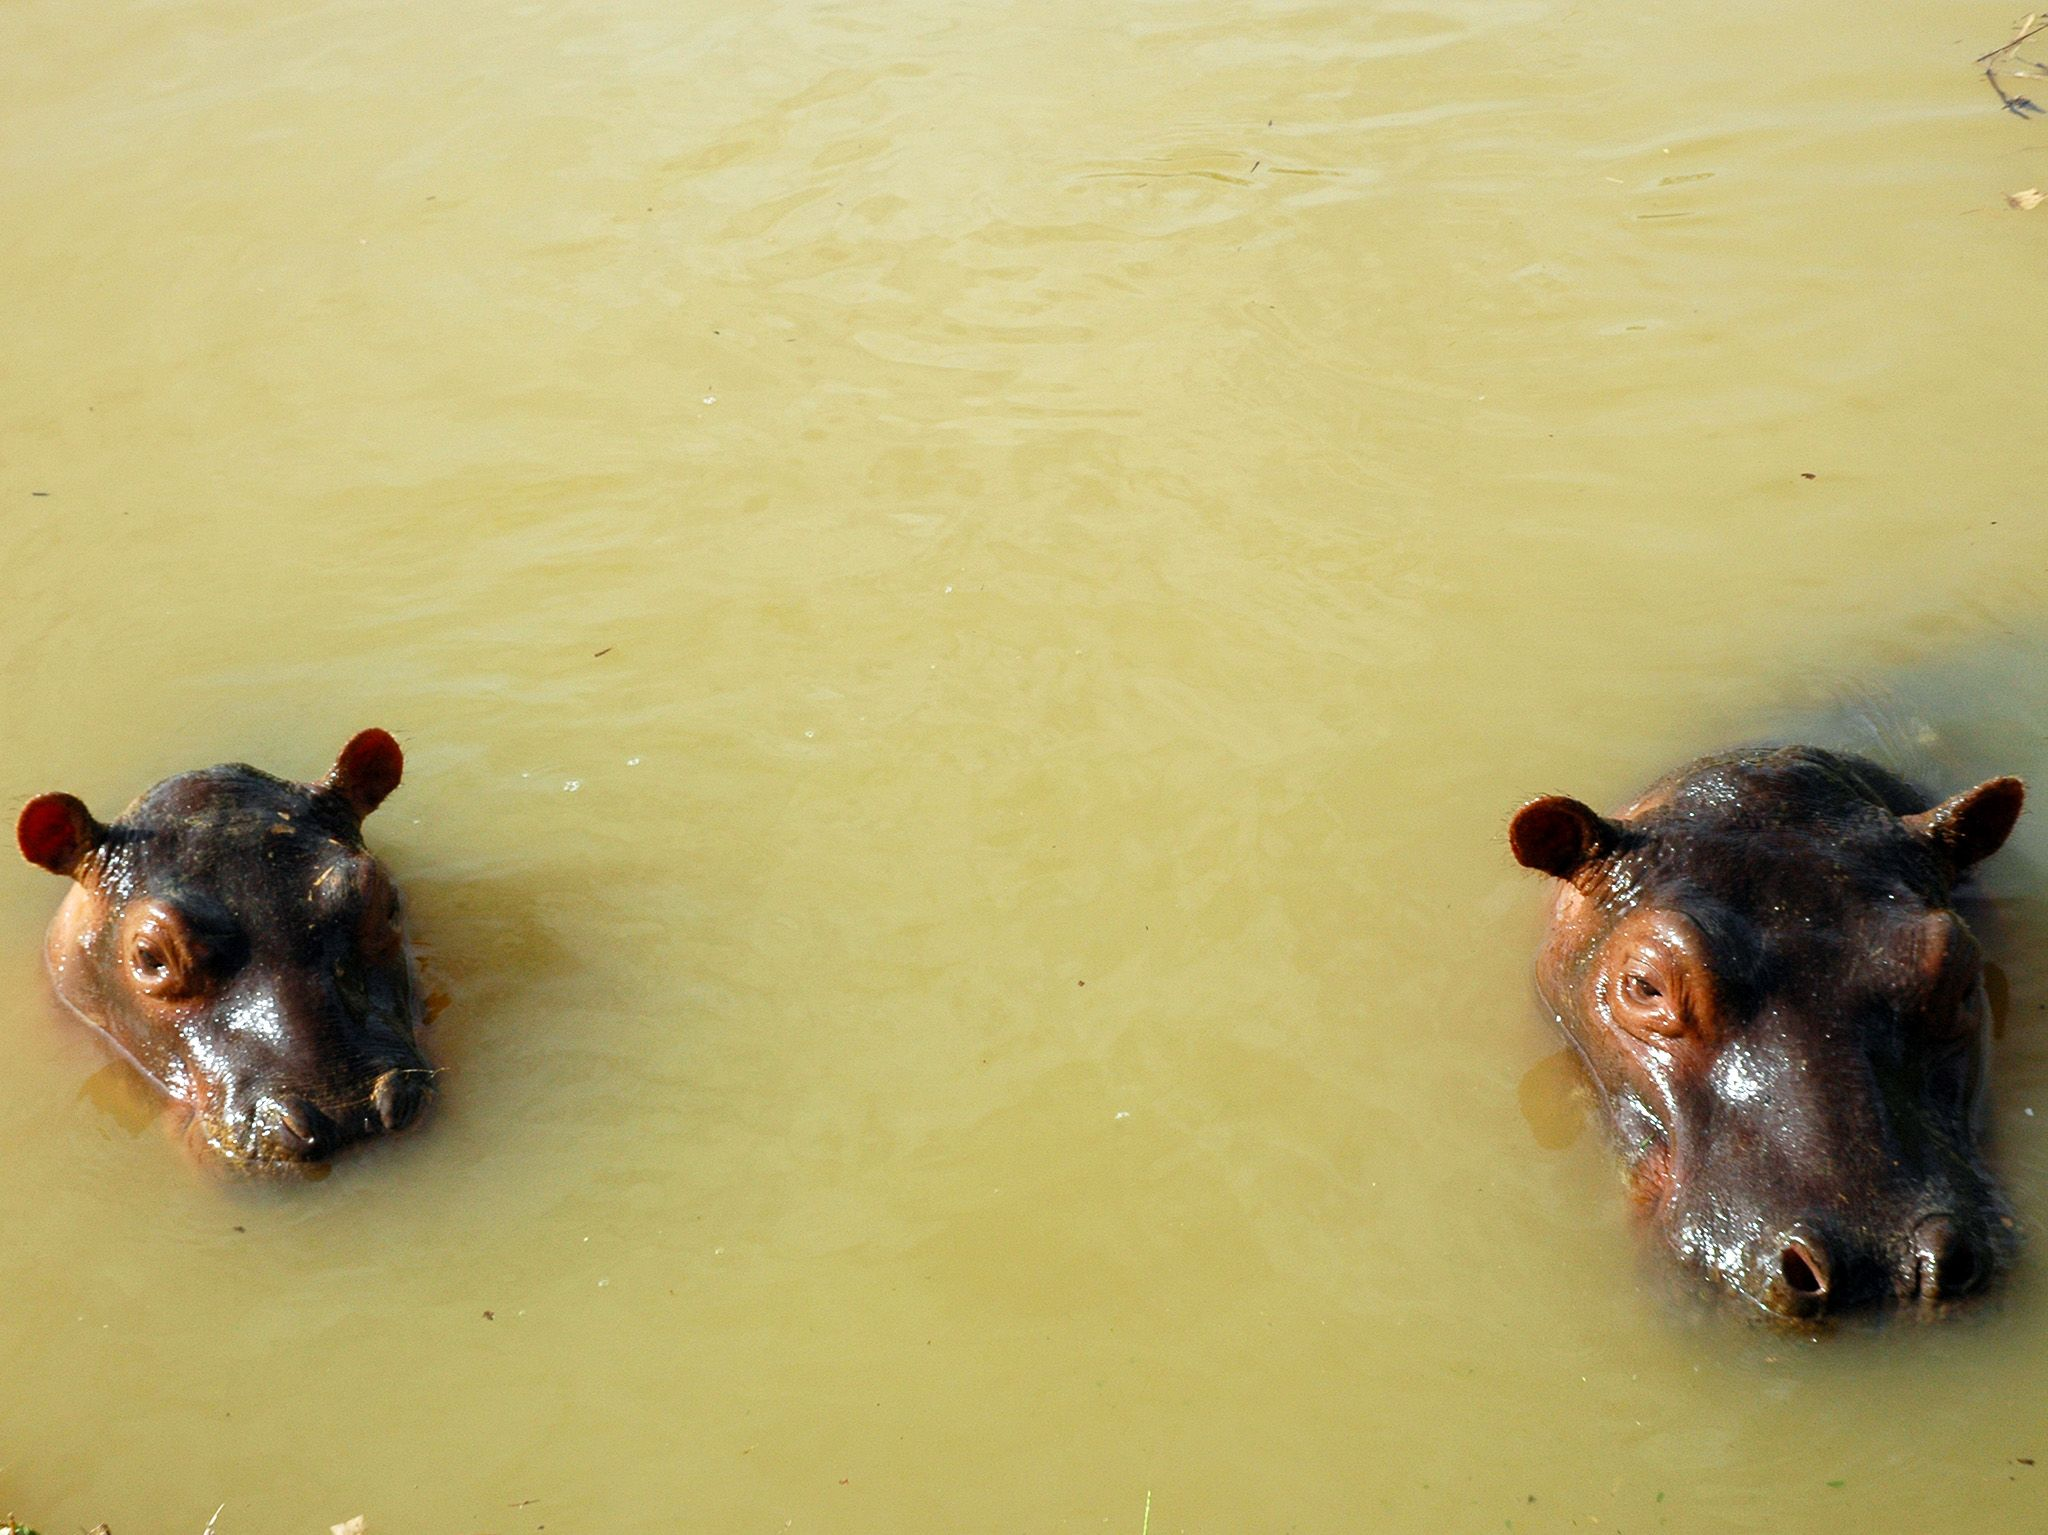 Puerto Truinfo, Colombia: Two baby hippos in a pond, poking their heads out of the water. This... [Photo of the day - March 2020]